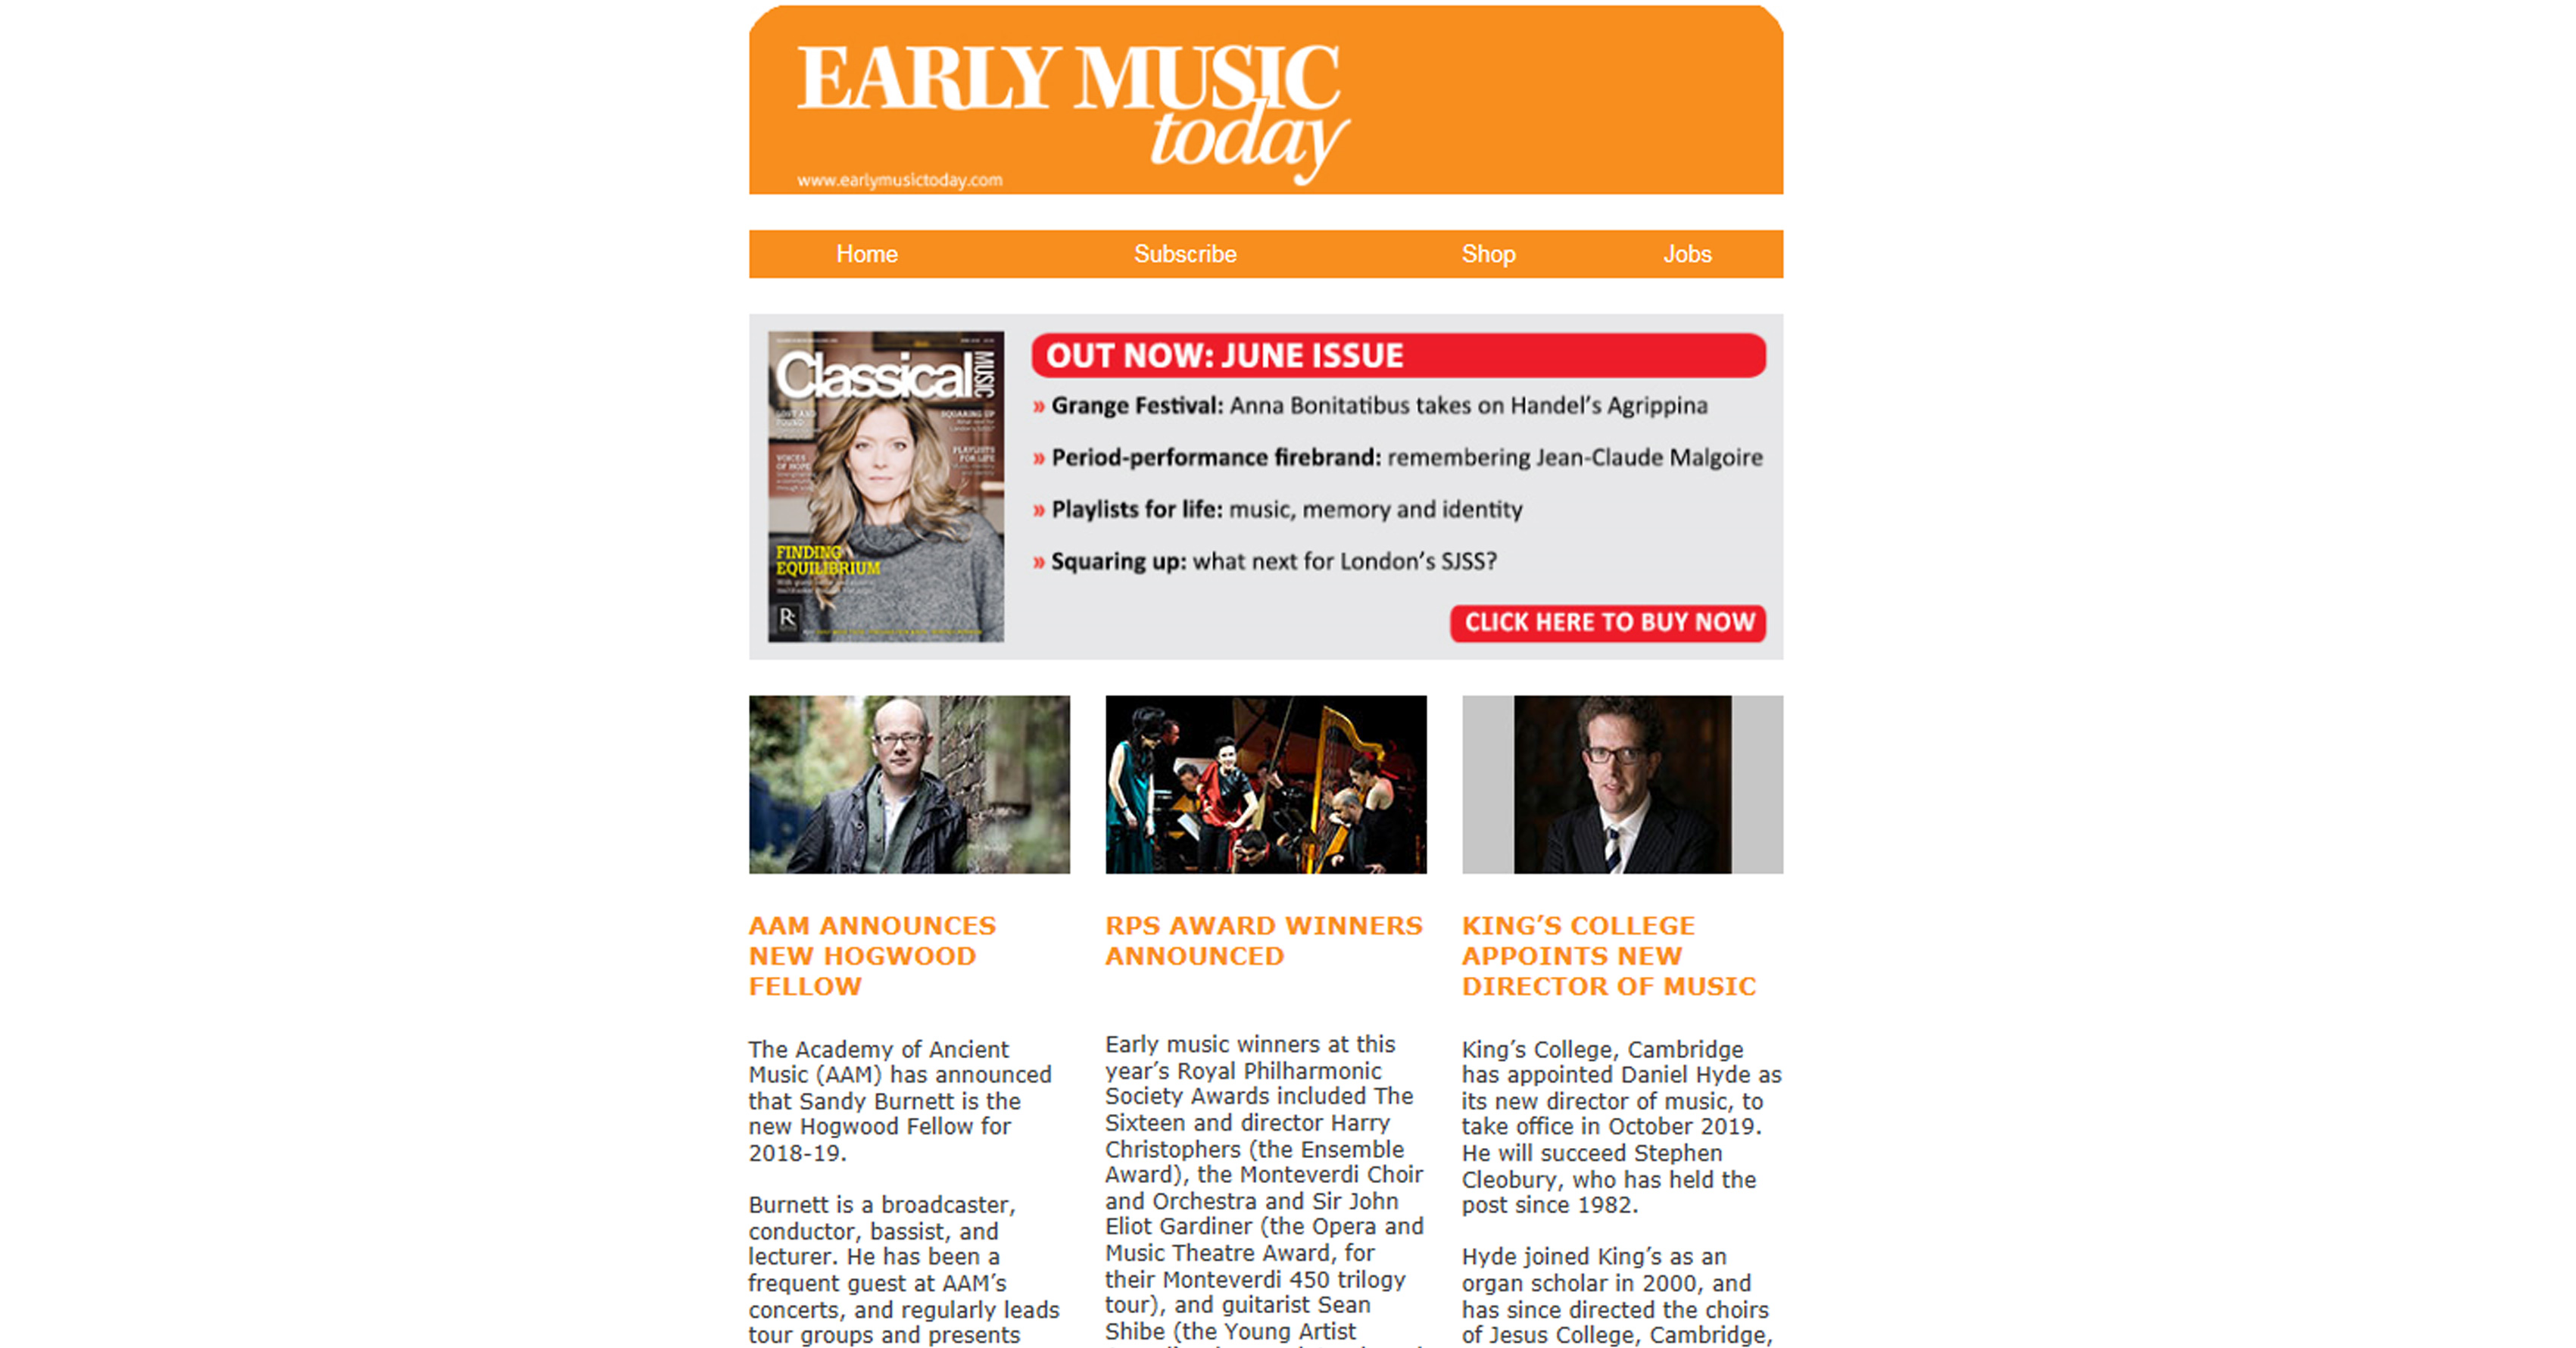 Sign up to receive Early Music Today's free e-newsletter